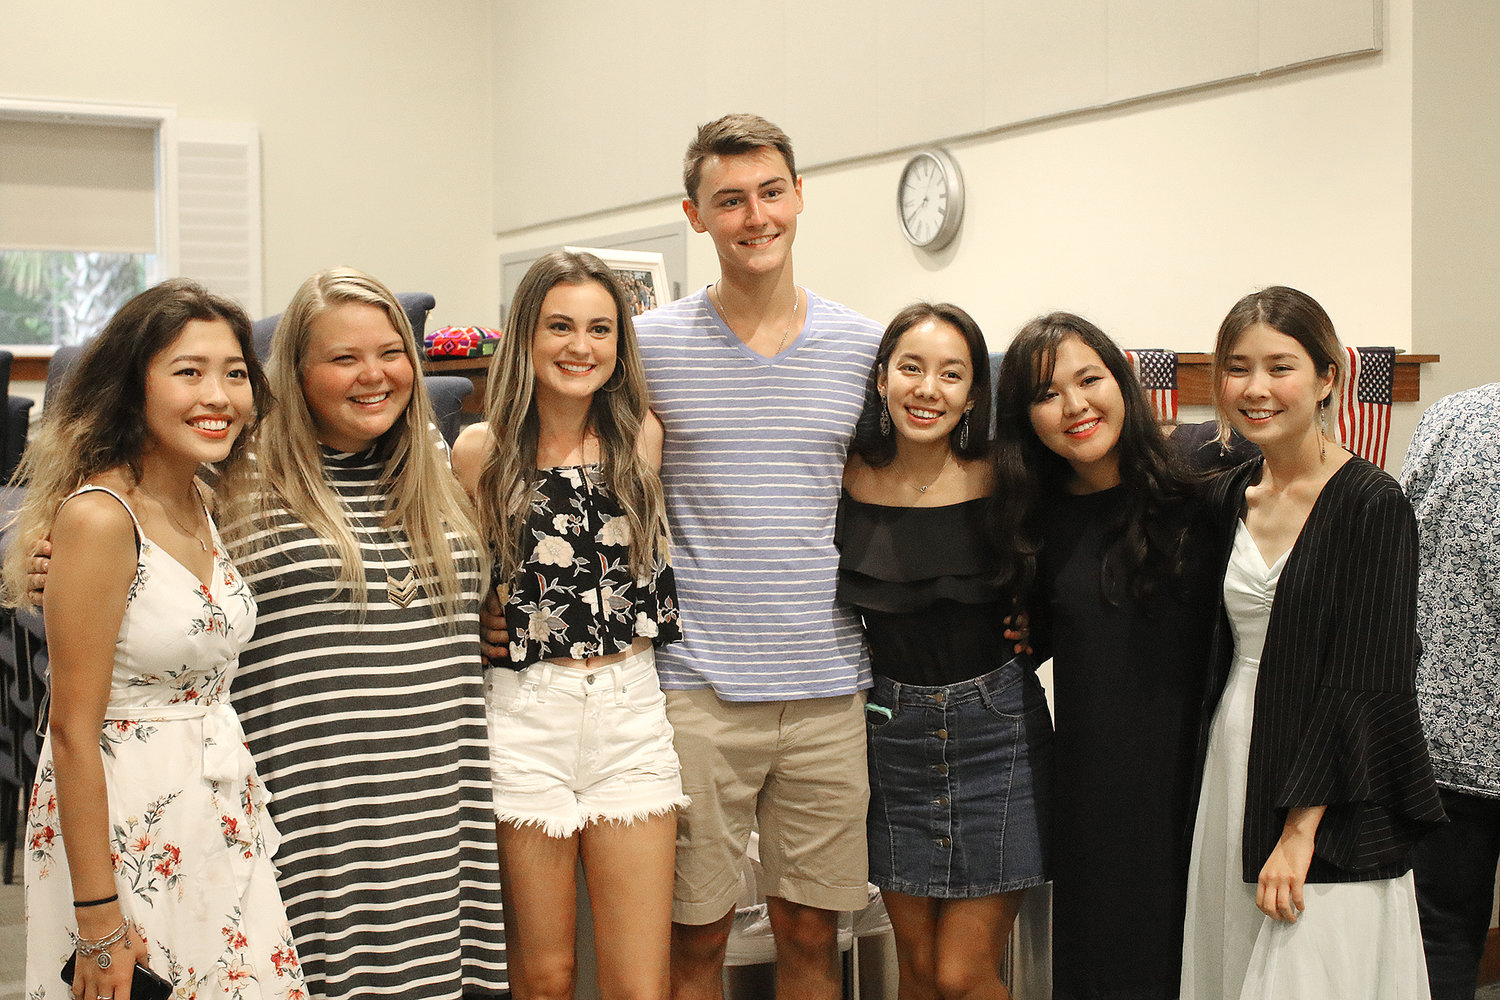 Danny White, center, poses with seven of the young women who participated in this summer's Greatest Exchange.